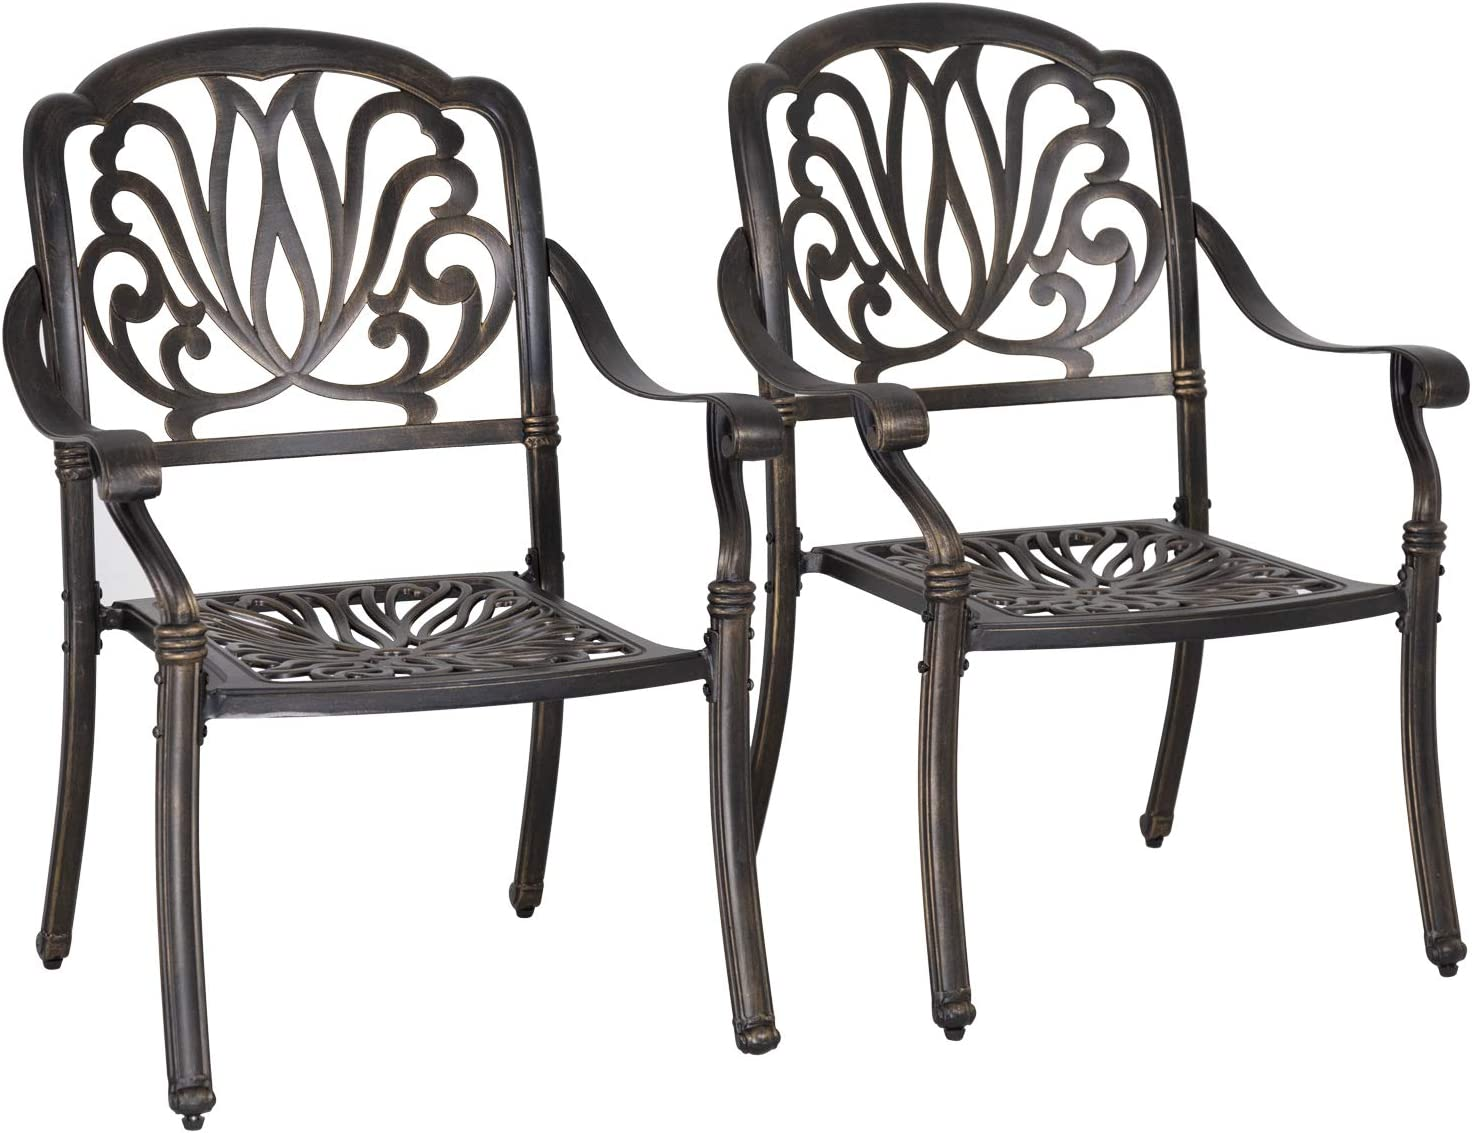 FDW Patio Chairs Dining Chairs Set of 2 Wrought Iron Patio Furniture Outdoor Chair Patio Furniture Chat Set Weather Resistant